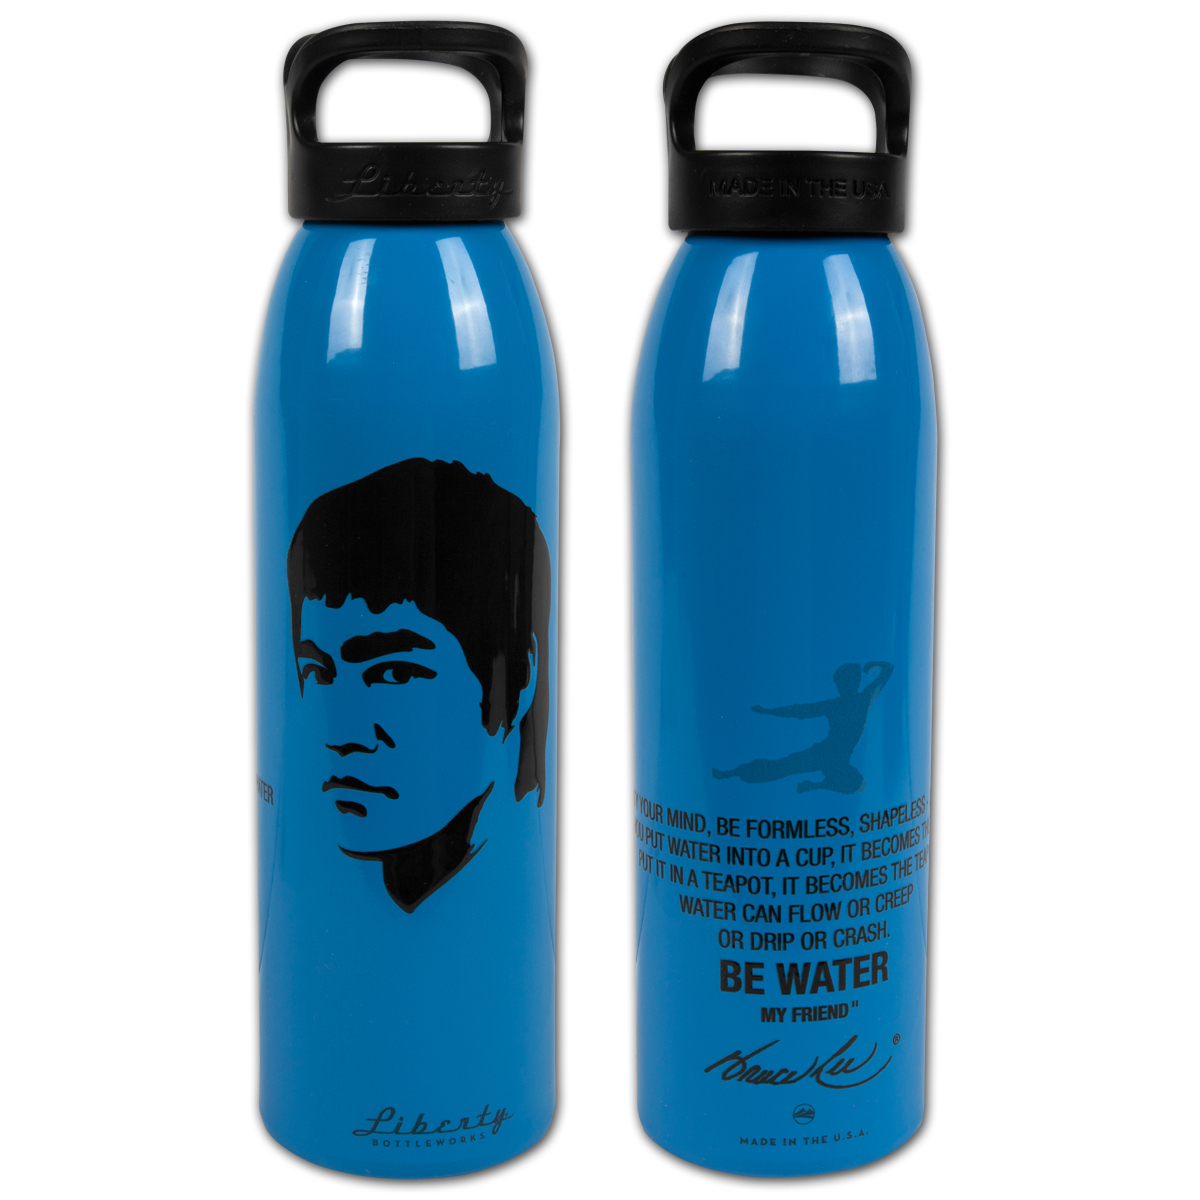 Bruce Lee 'Be Water' Blue Liberty Bottle